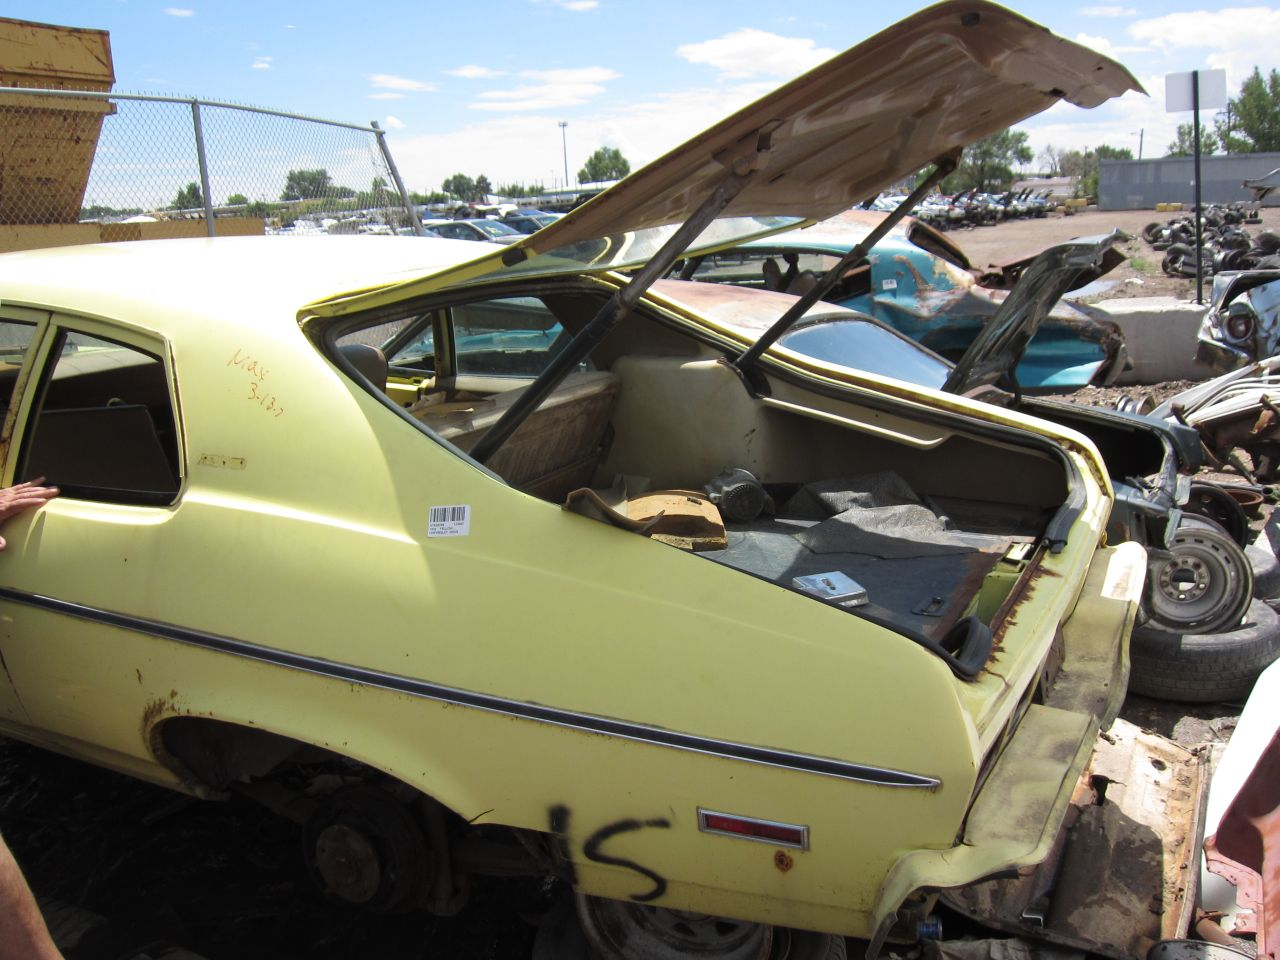 79 as well Drag Race Car Wiring Diagram together with History Dodge Challenger further Index2 besides Mopar A Body Exhaust Manifolds 1972 74 Dart Duster Small Block 318 340. on 1972 duster engine